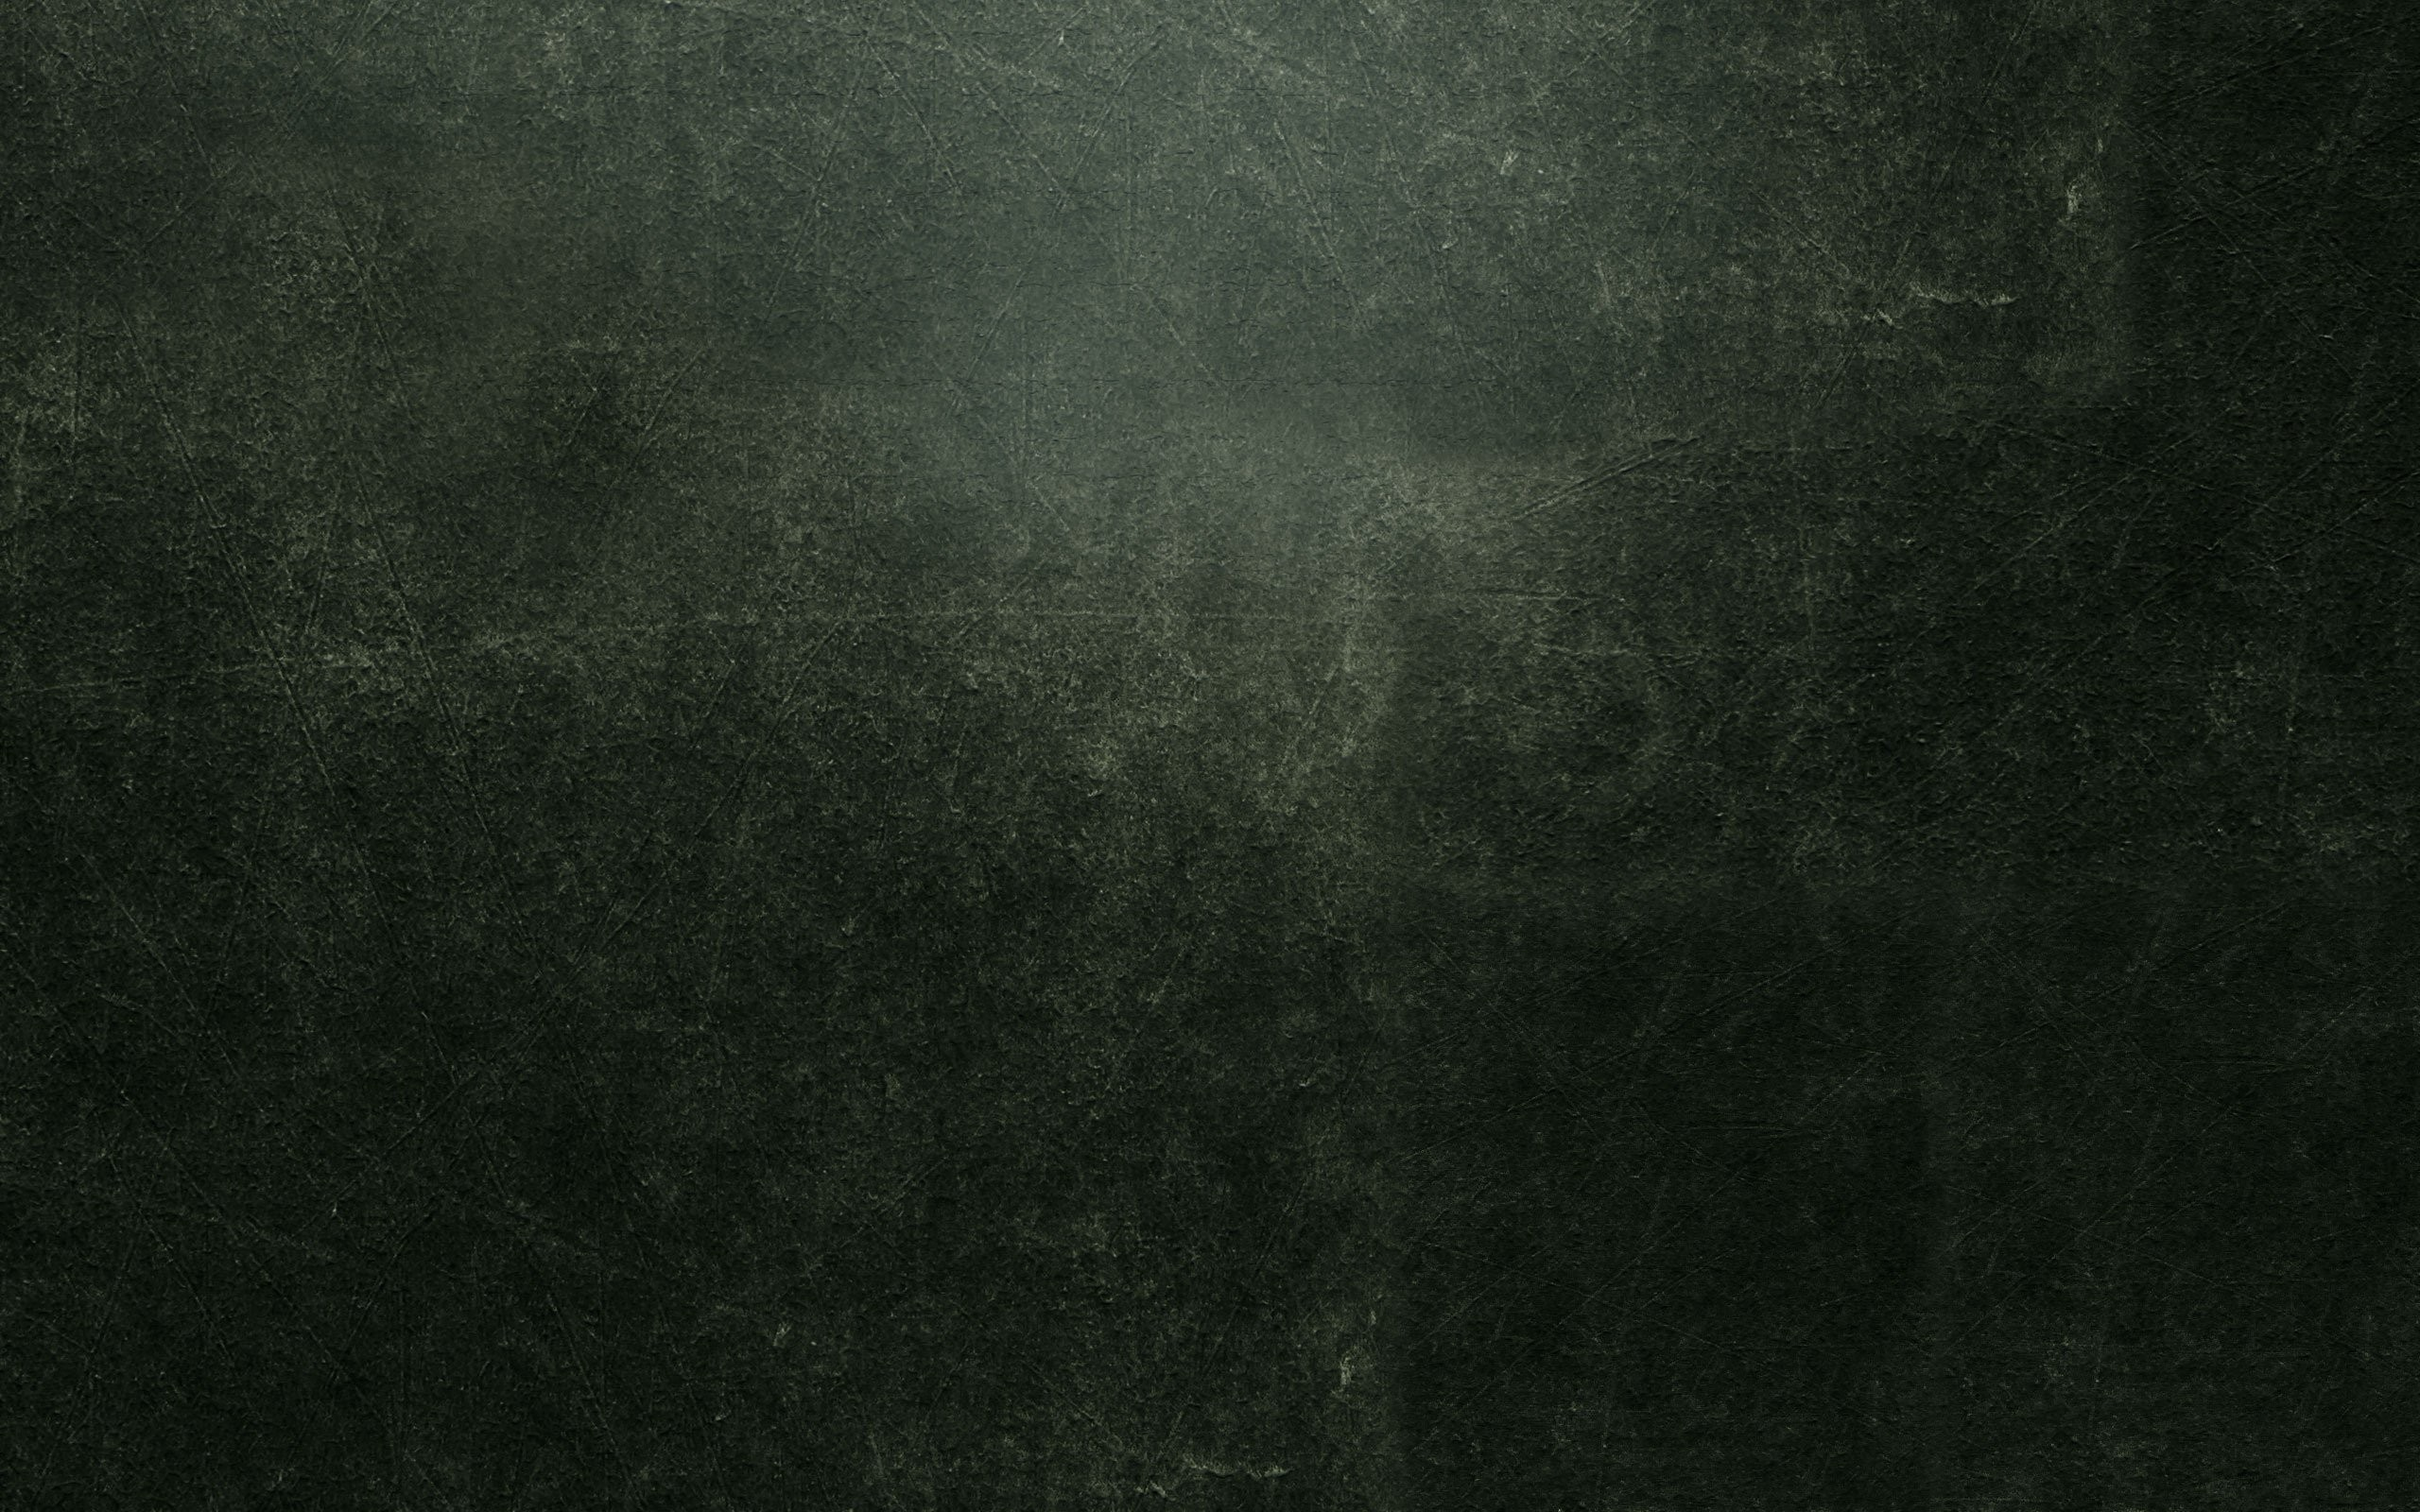 Dark Grey background ·â'  Download free amazing backgrounds for